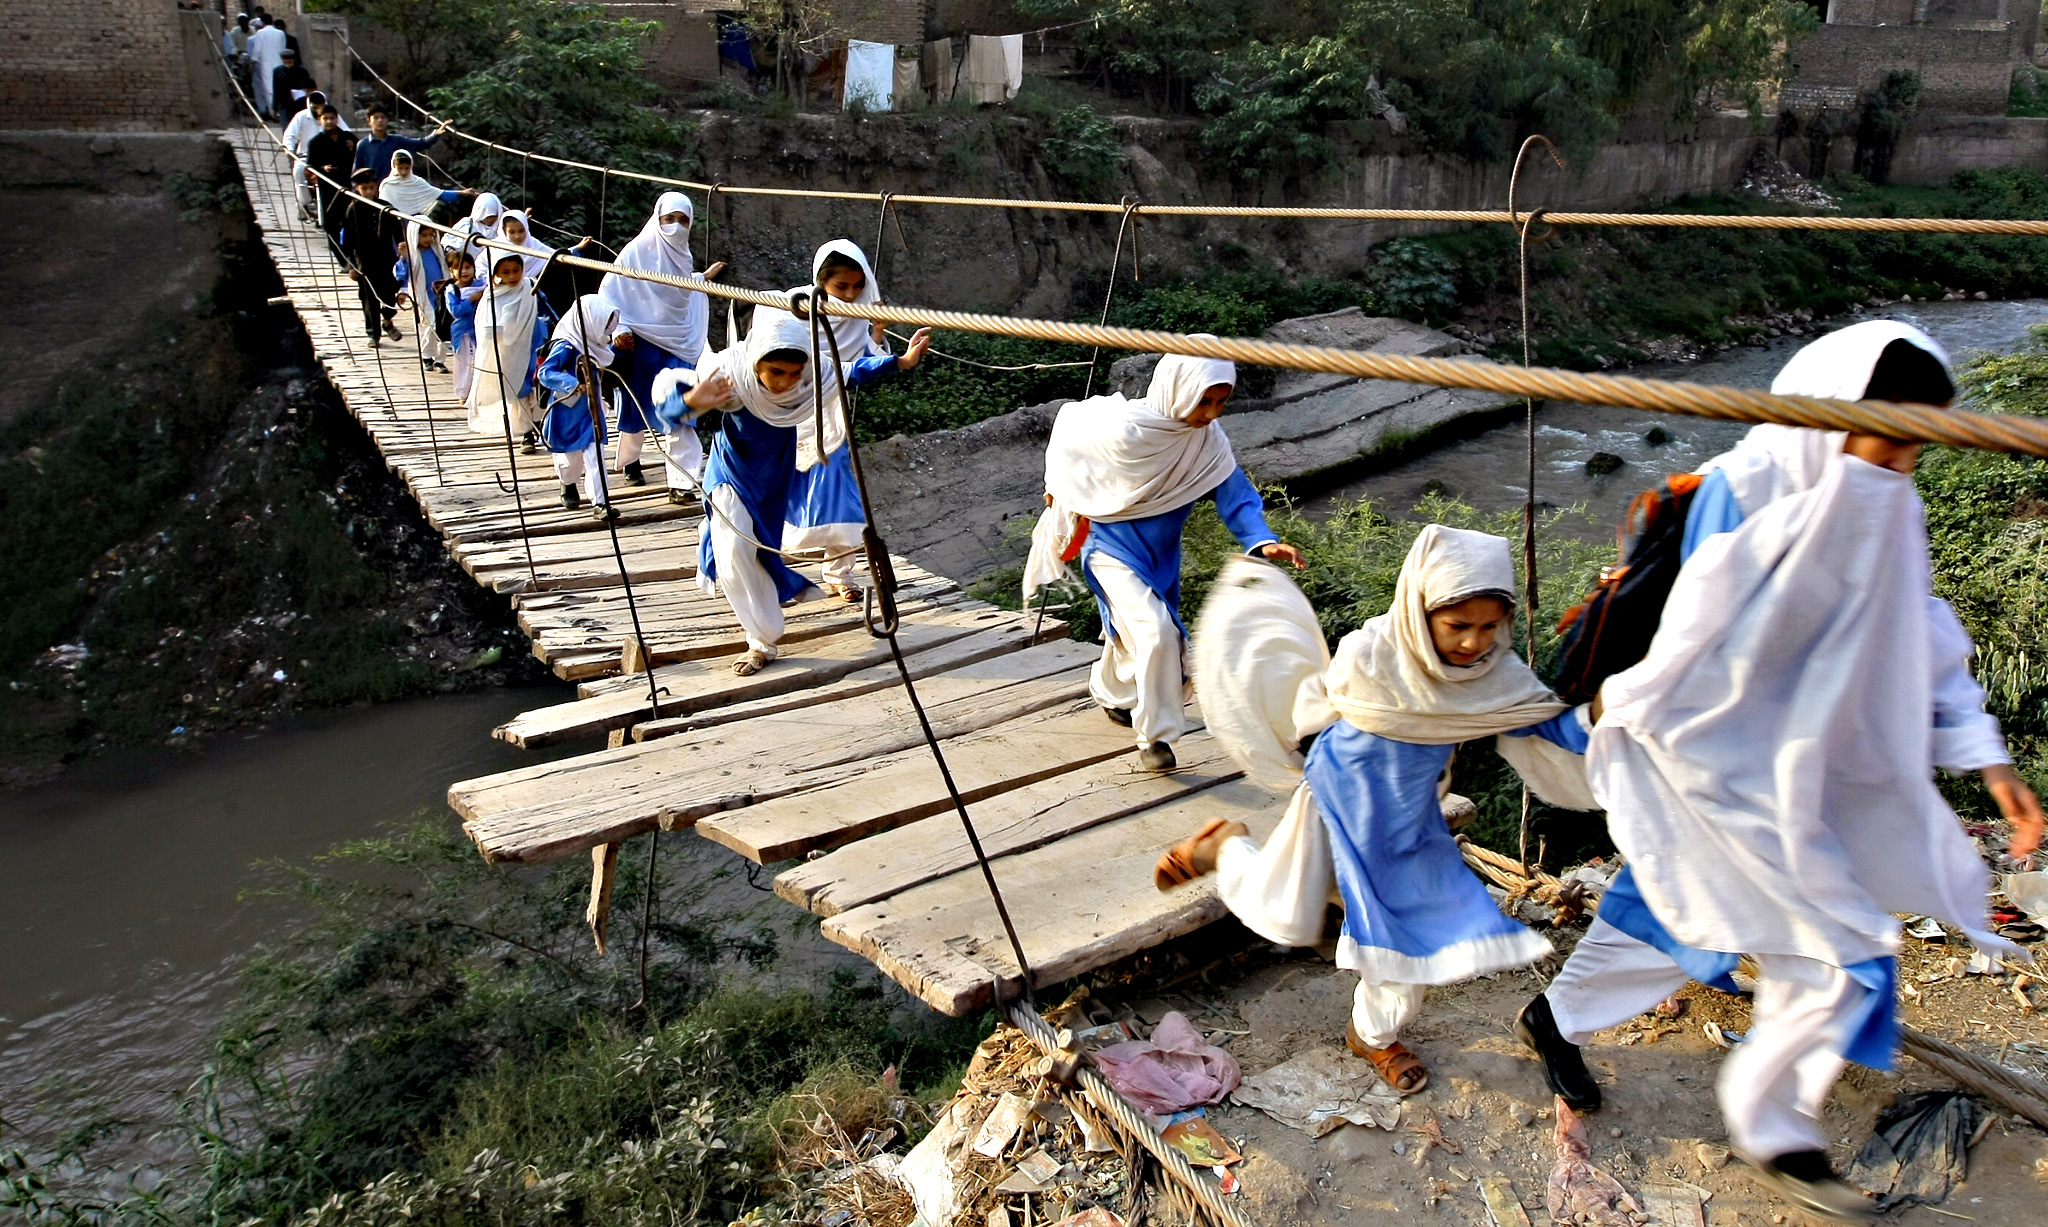 Pakistani students cross a makeshift bridge in Peshawar, Pakistan, Tuesday, Oct. 6, 2015. The previous bridge was washed away in a flood.